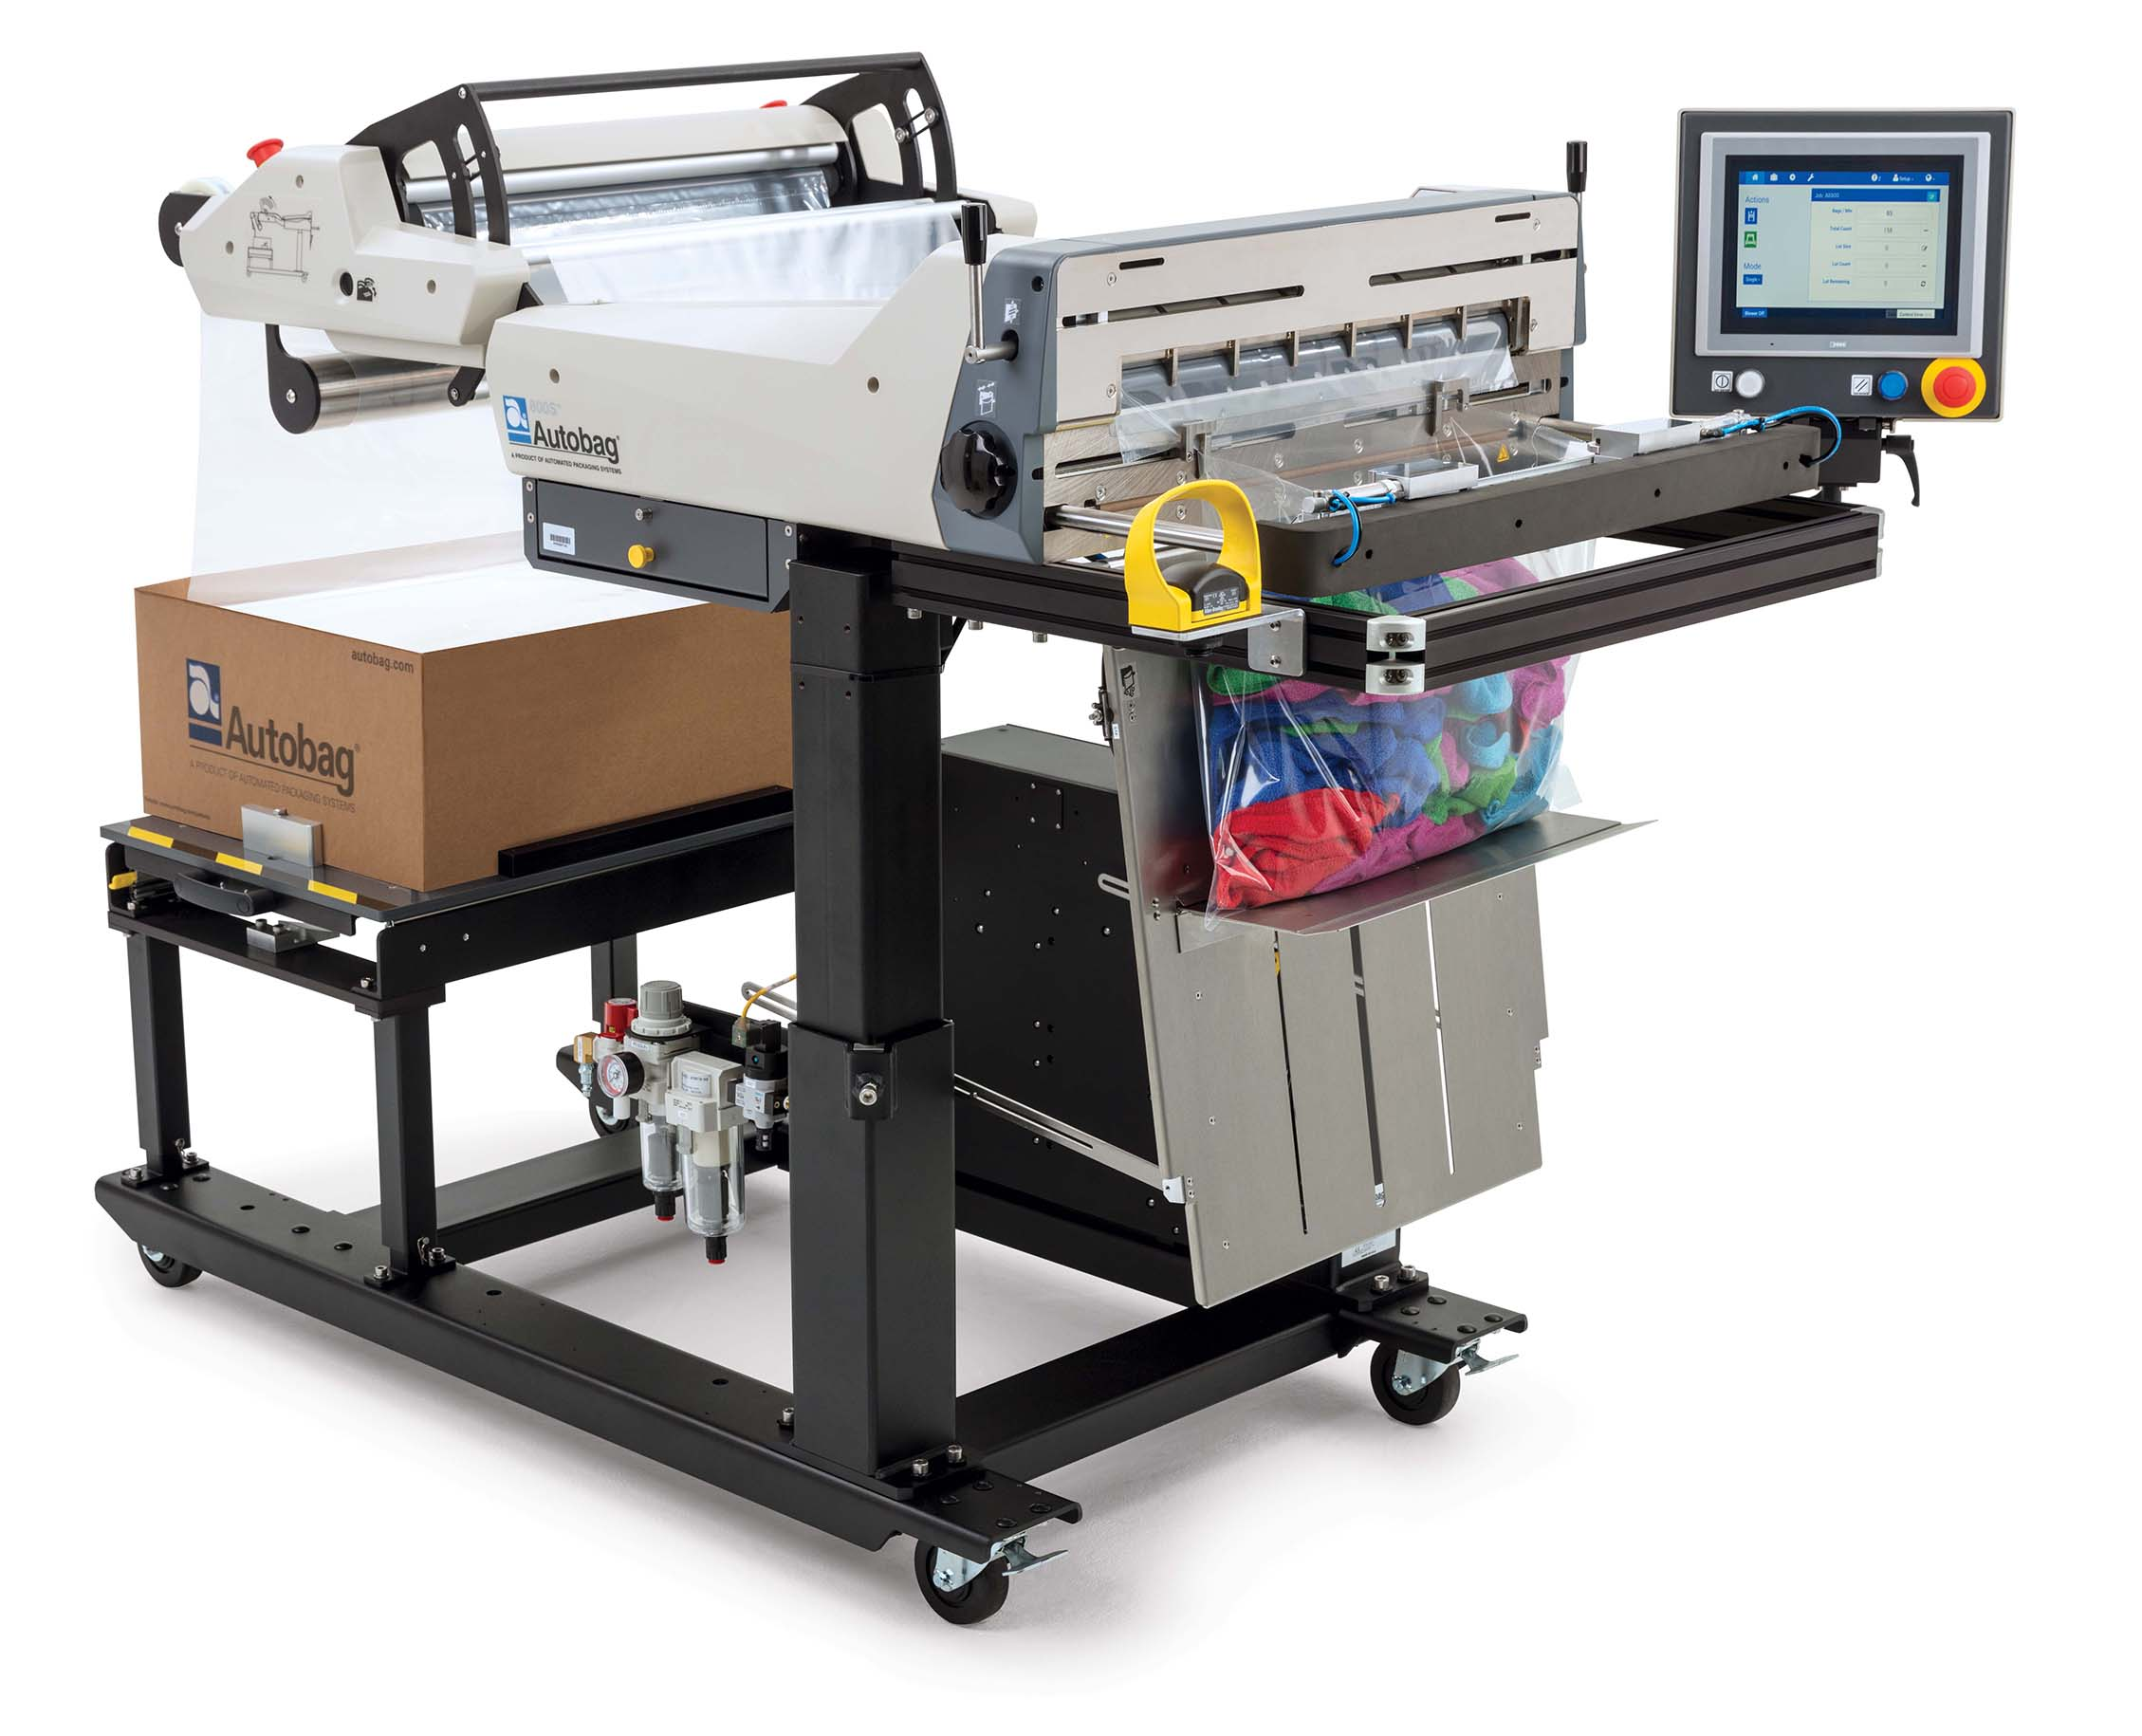 Autobag 800S automatic bag sealer rags application